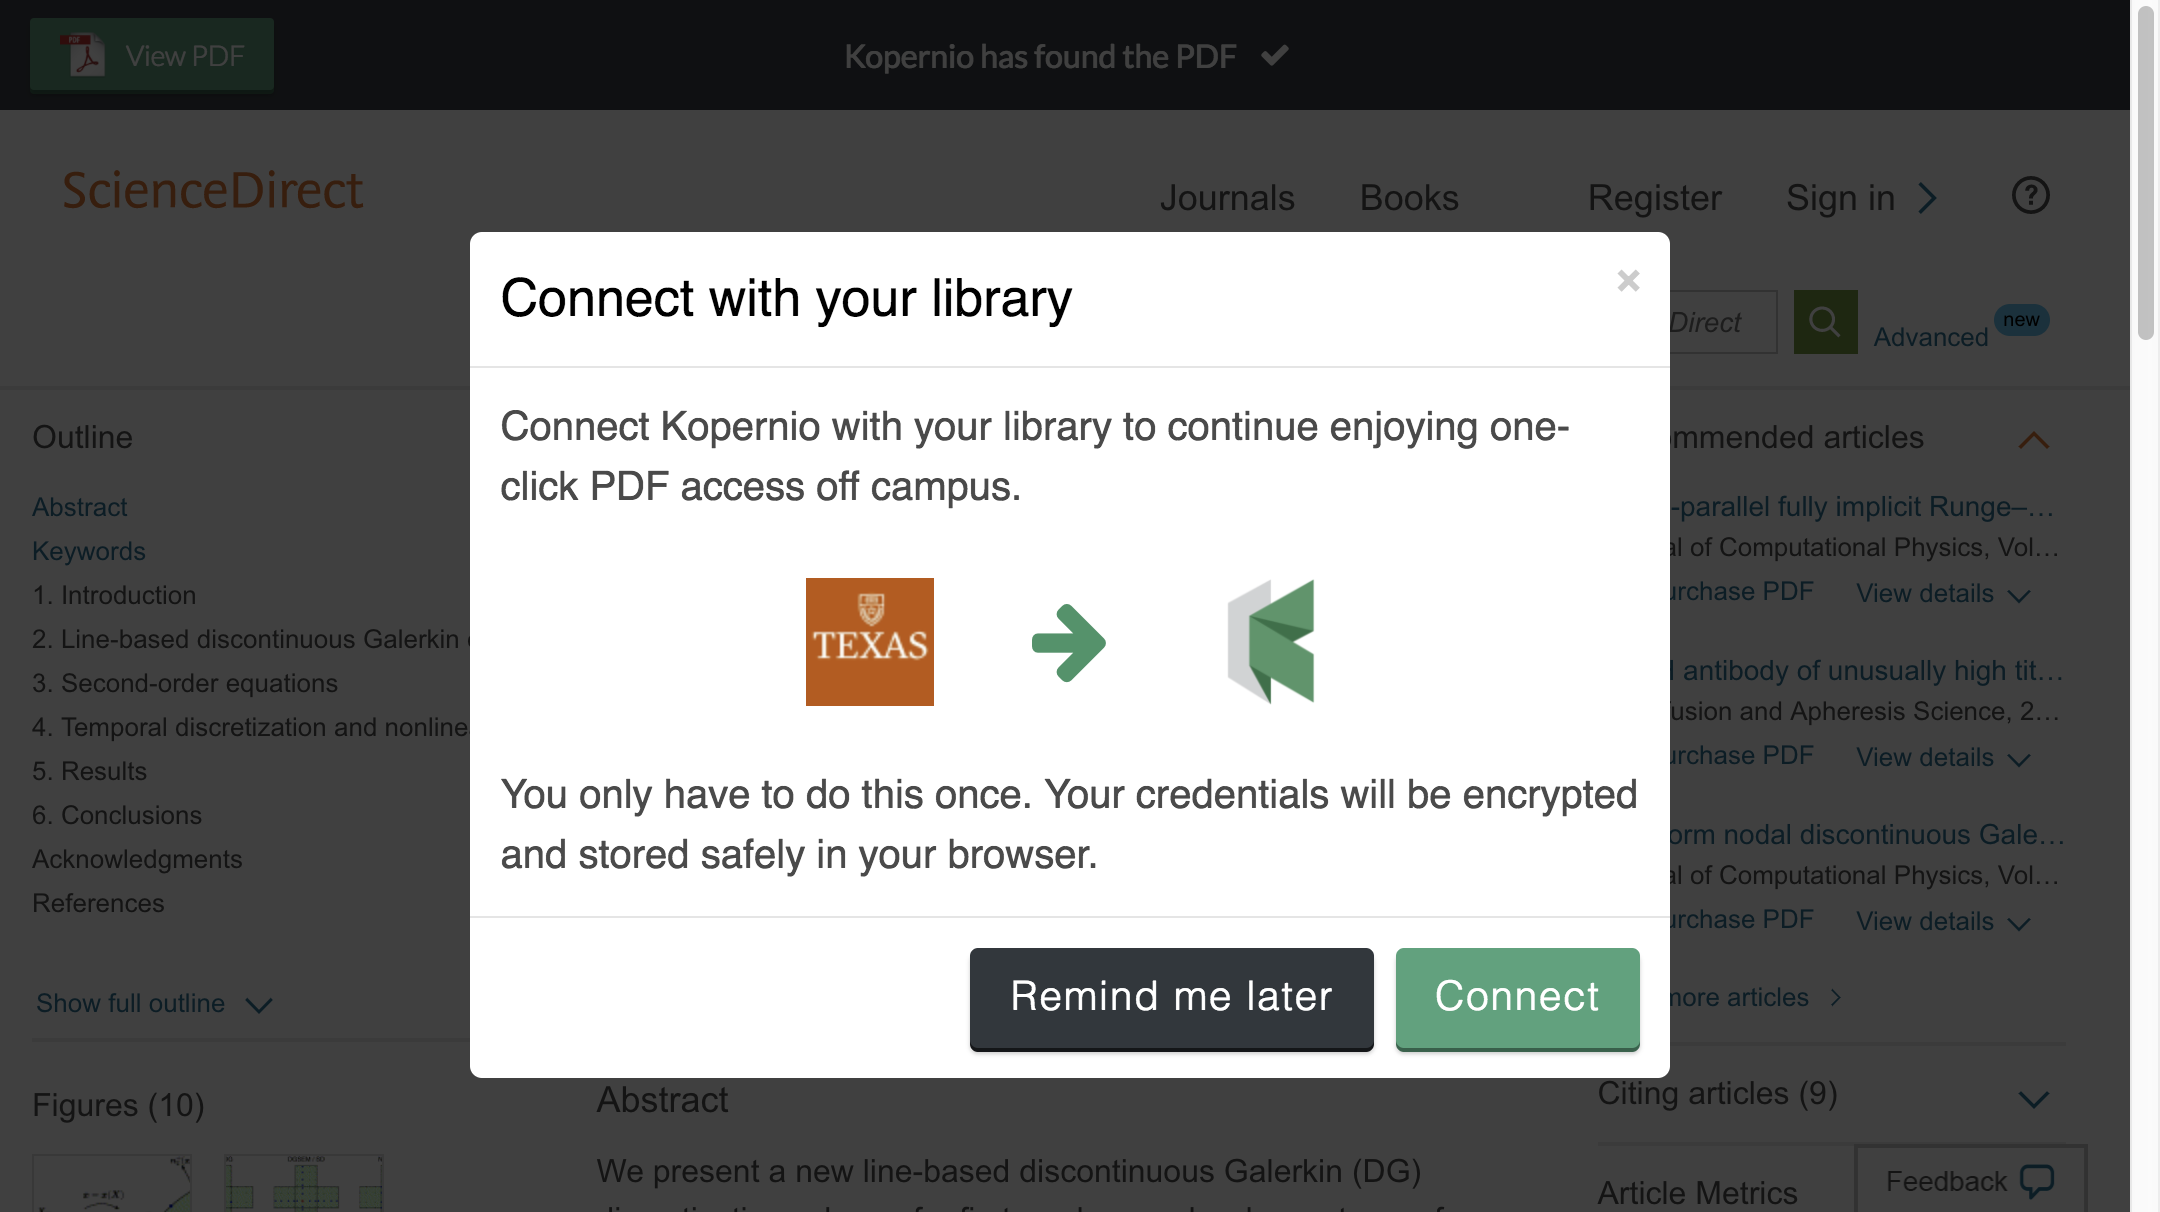 Connect to library prompt for off-campus access to University of Texas at Austin e-resources.